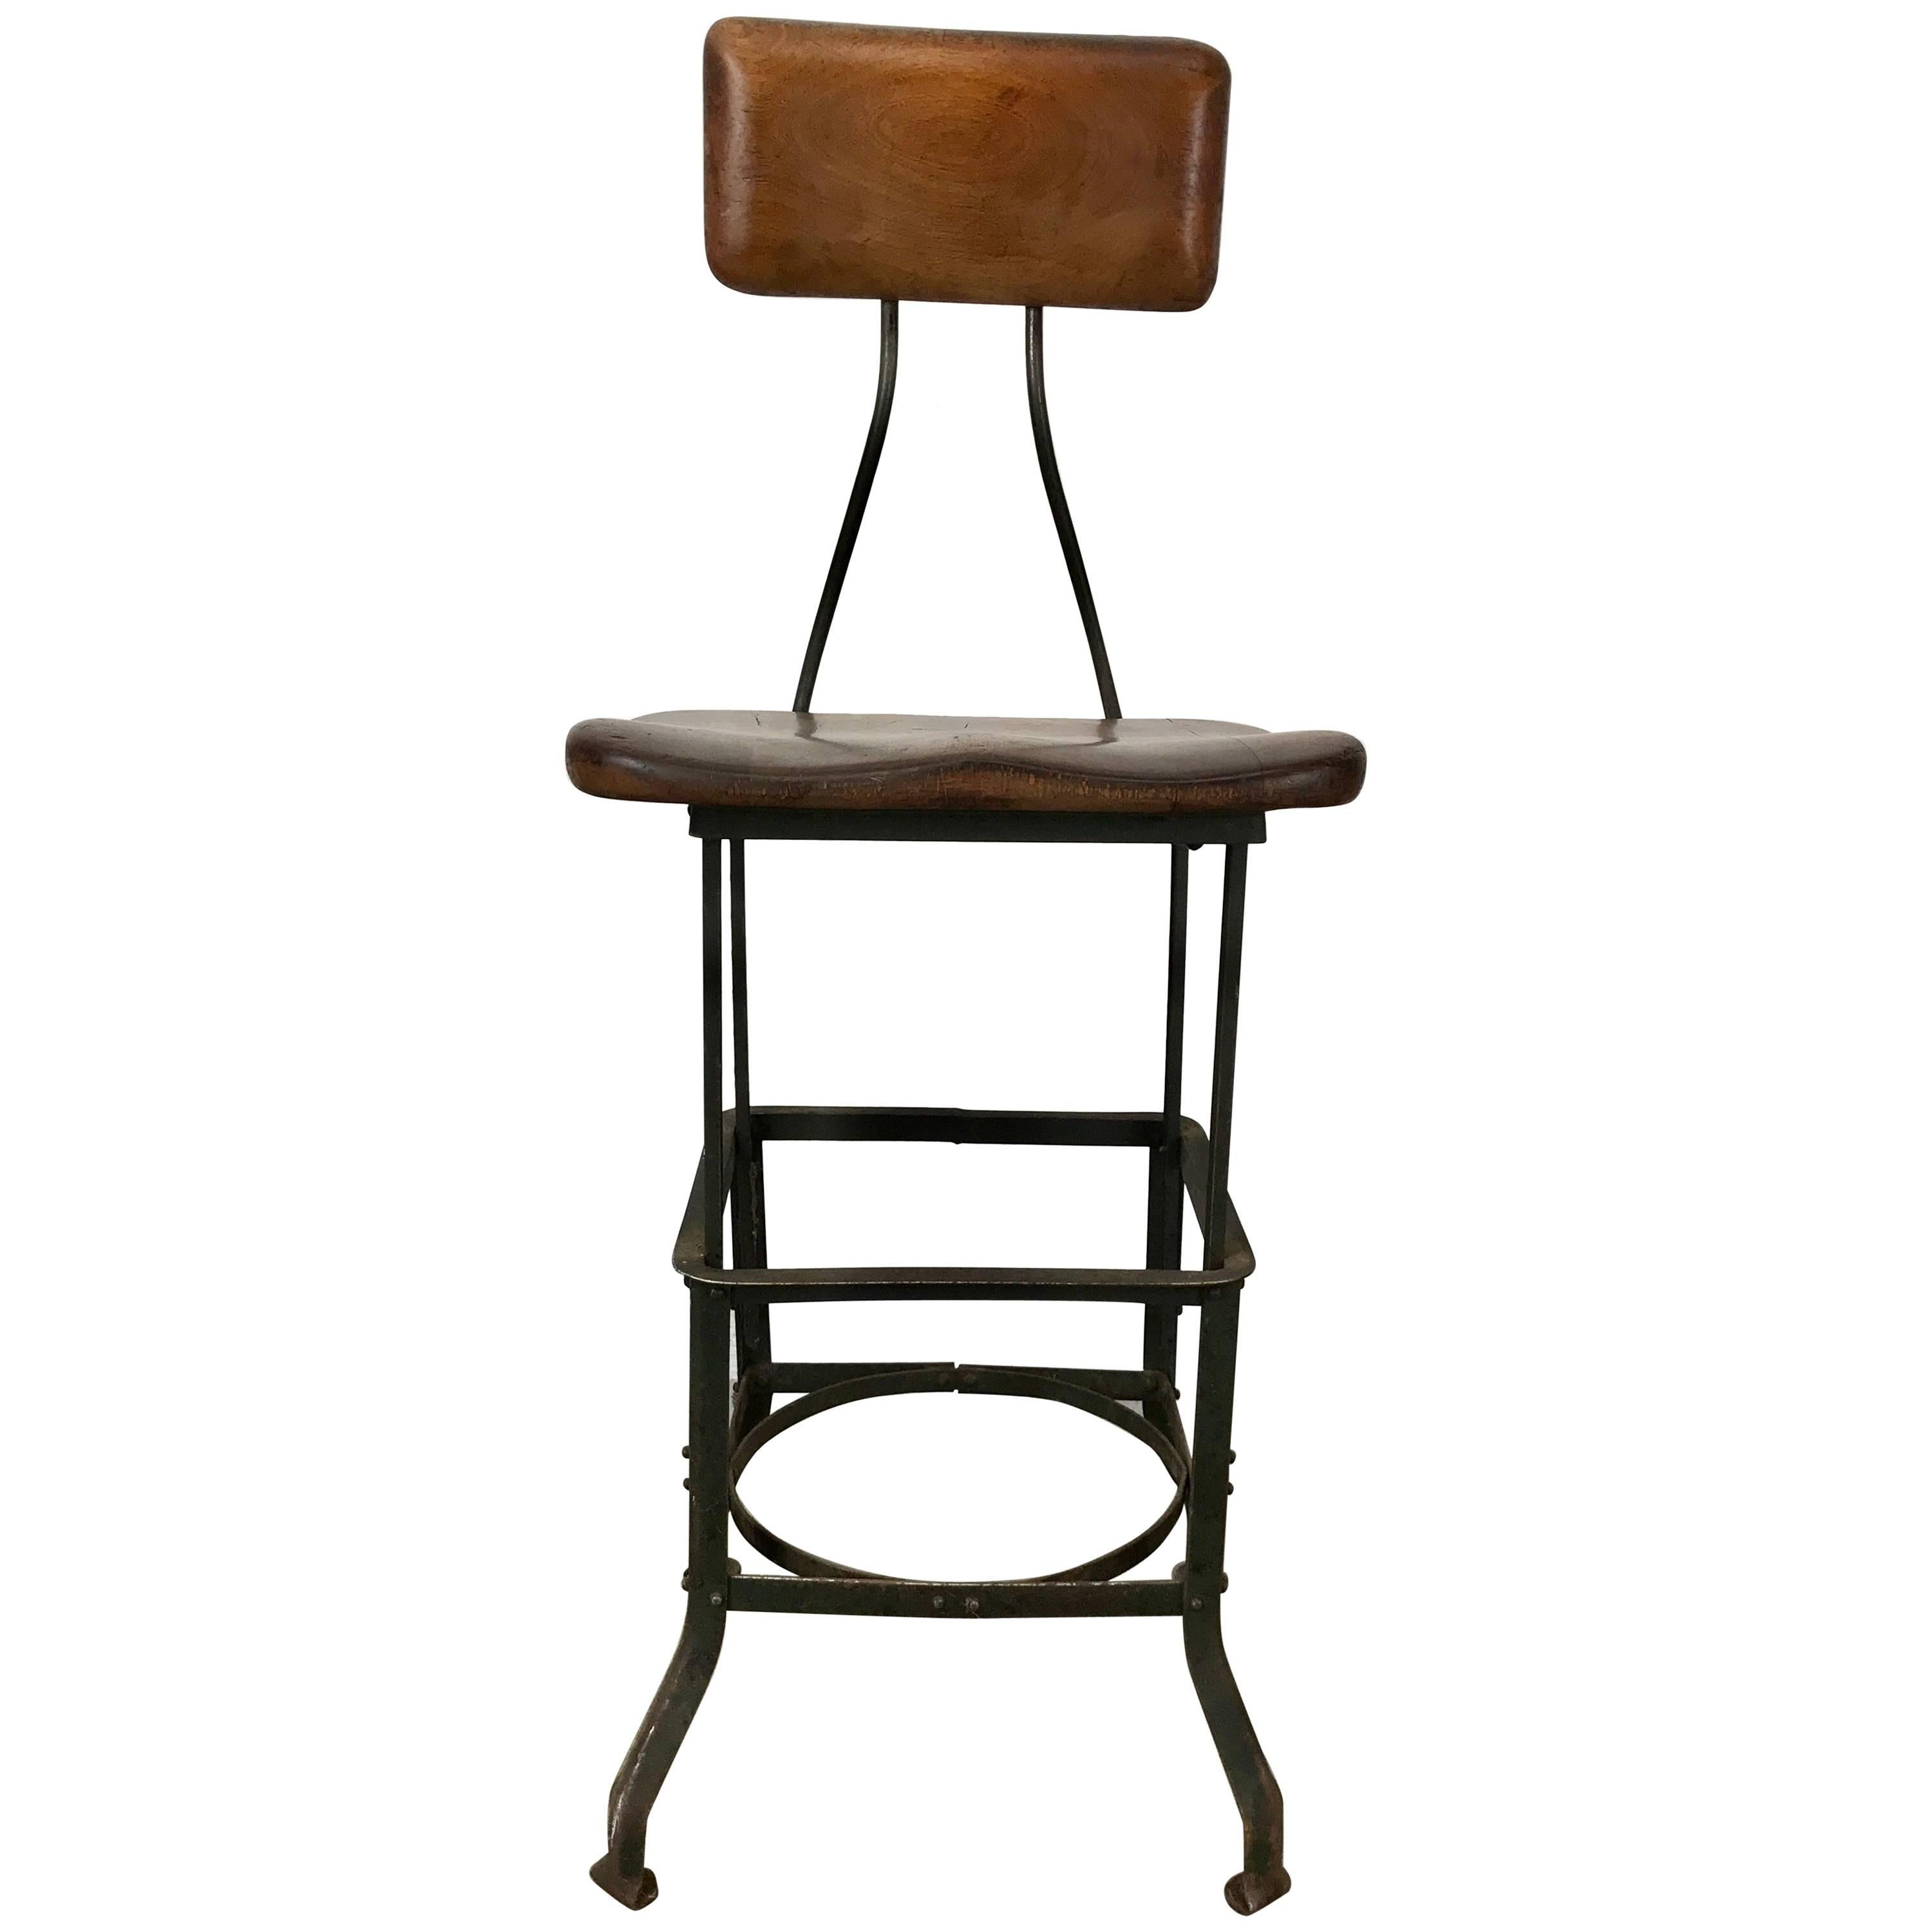 Early Adjustable Industrial Machinist Stool, Manufactured by Toledo